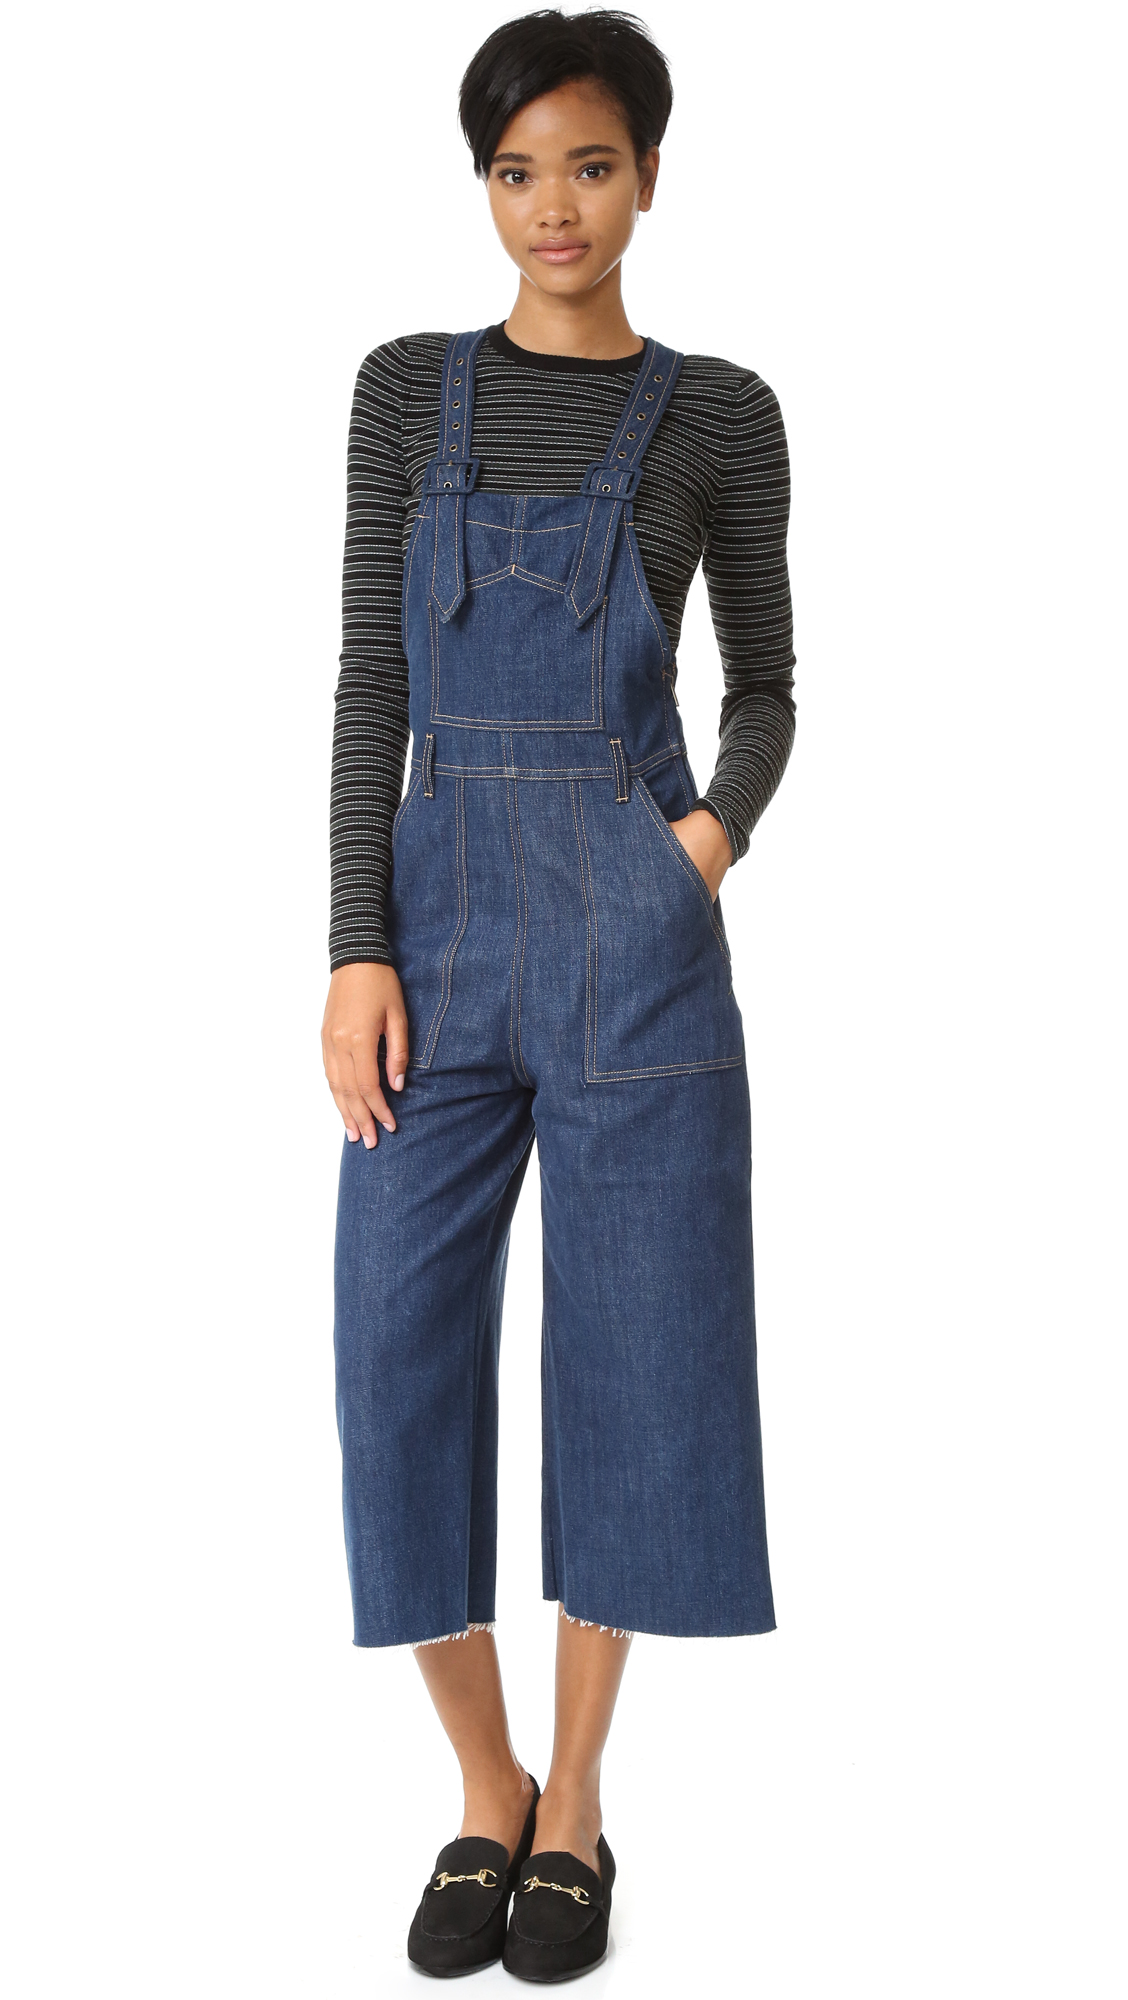 Charming Siwy overalls with a touch of retro style. Denim covered buckles fasten the adjustable straps. Classic 5 pocket styling. Raw cuffs. Hidden side zip. Fabric: Stretch denim. 60% cotton/40% lyocell. Wash warm or dry clean. Made in